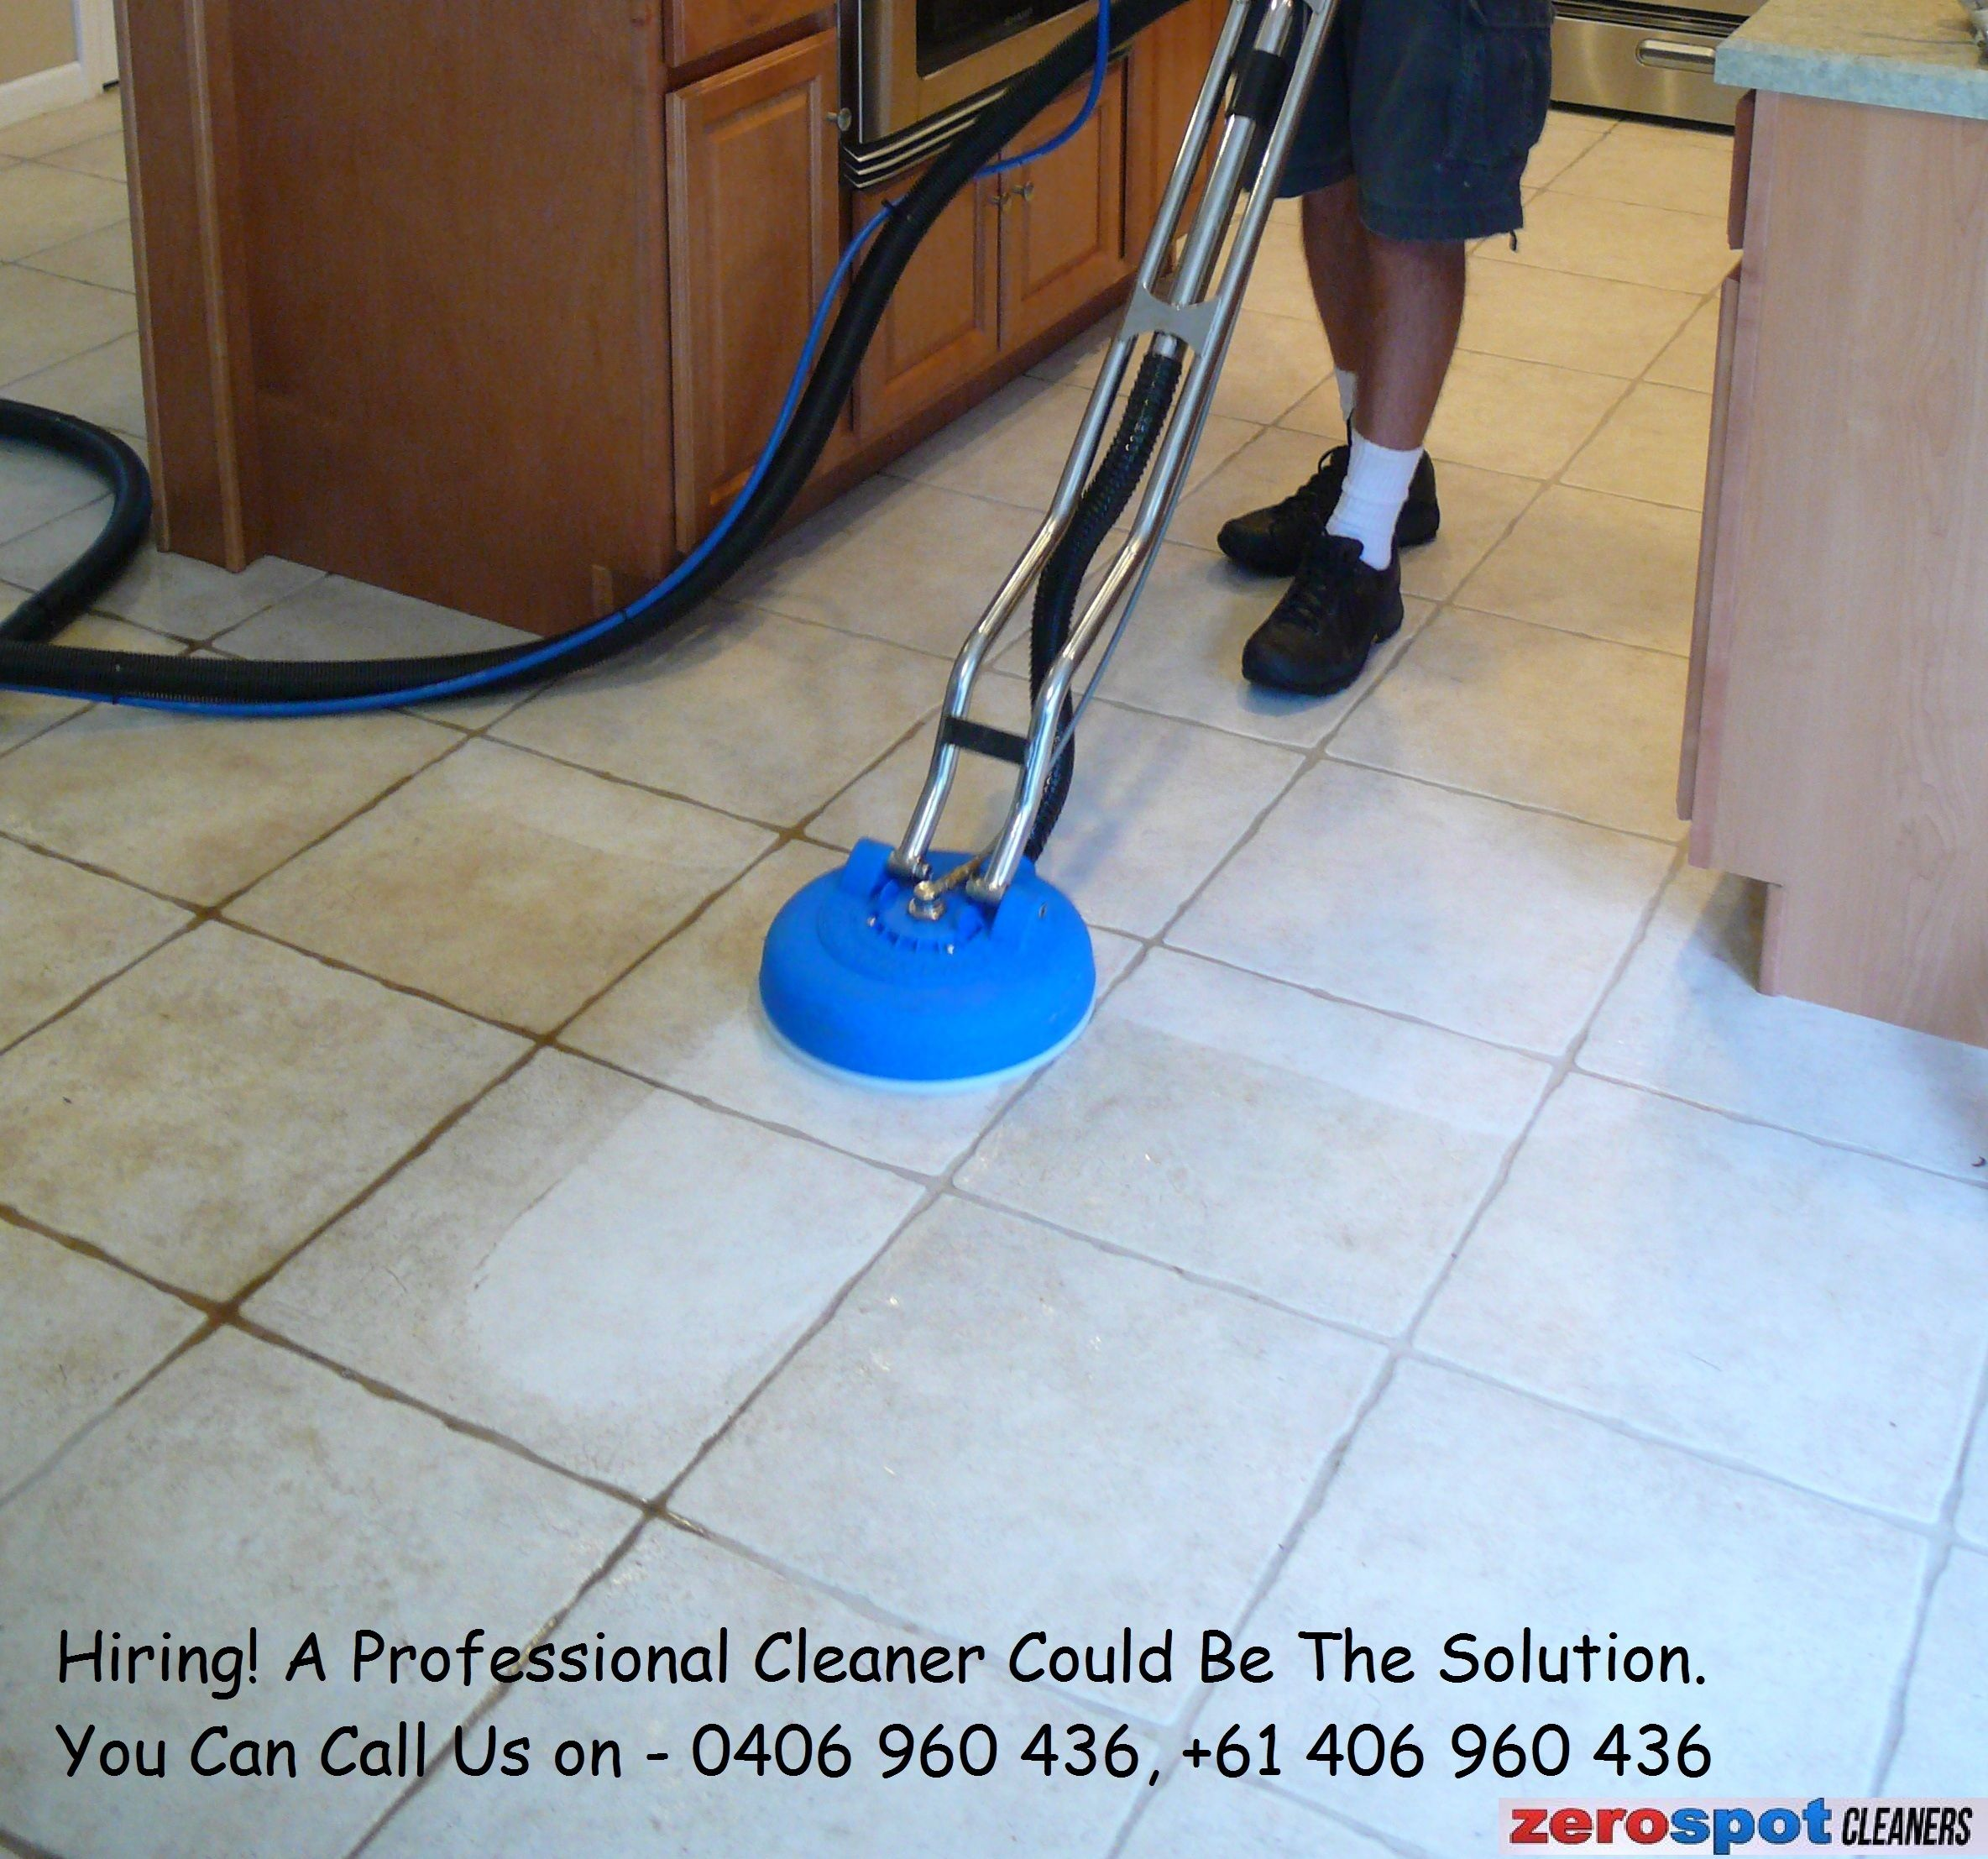 Tensed About The Dirt On Floor Hire Our Professional Tile Grout Cleaners And Save Time